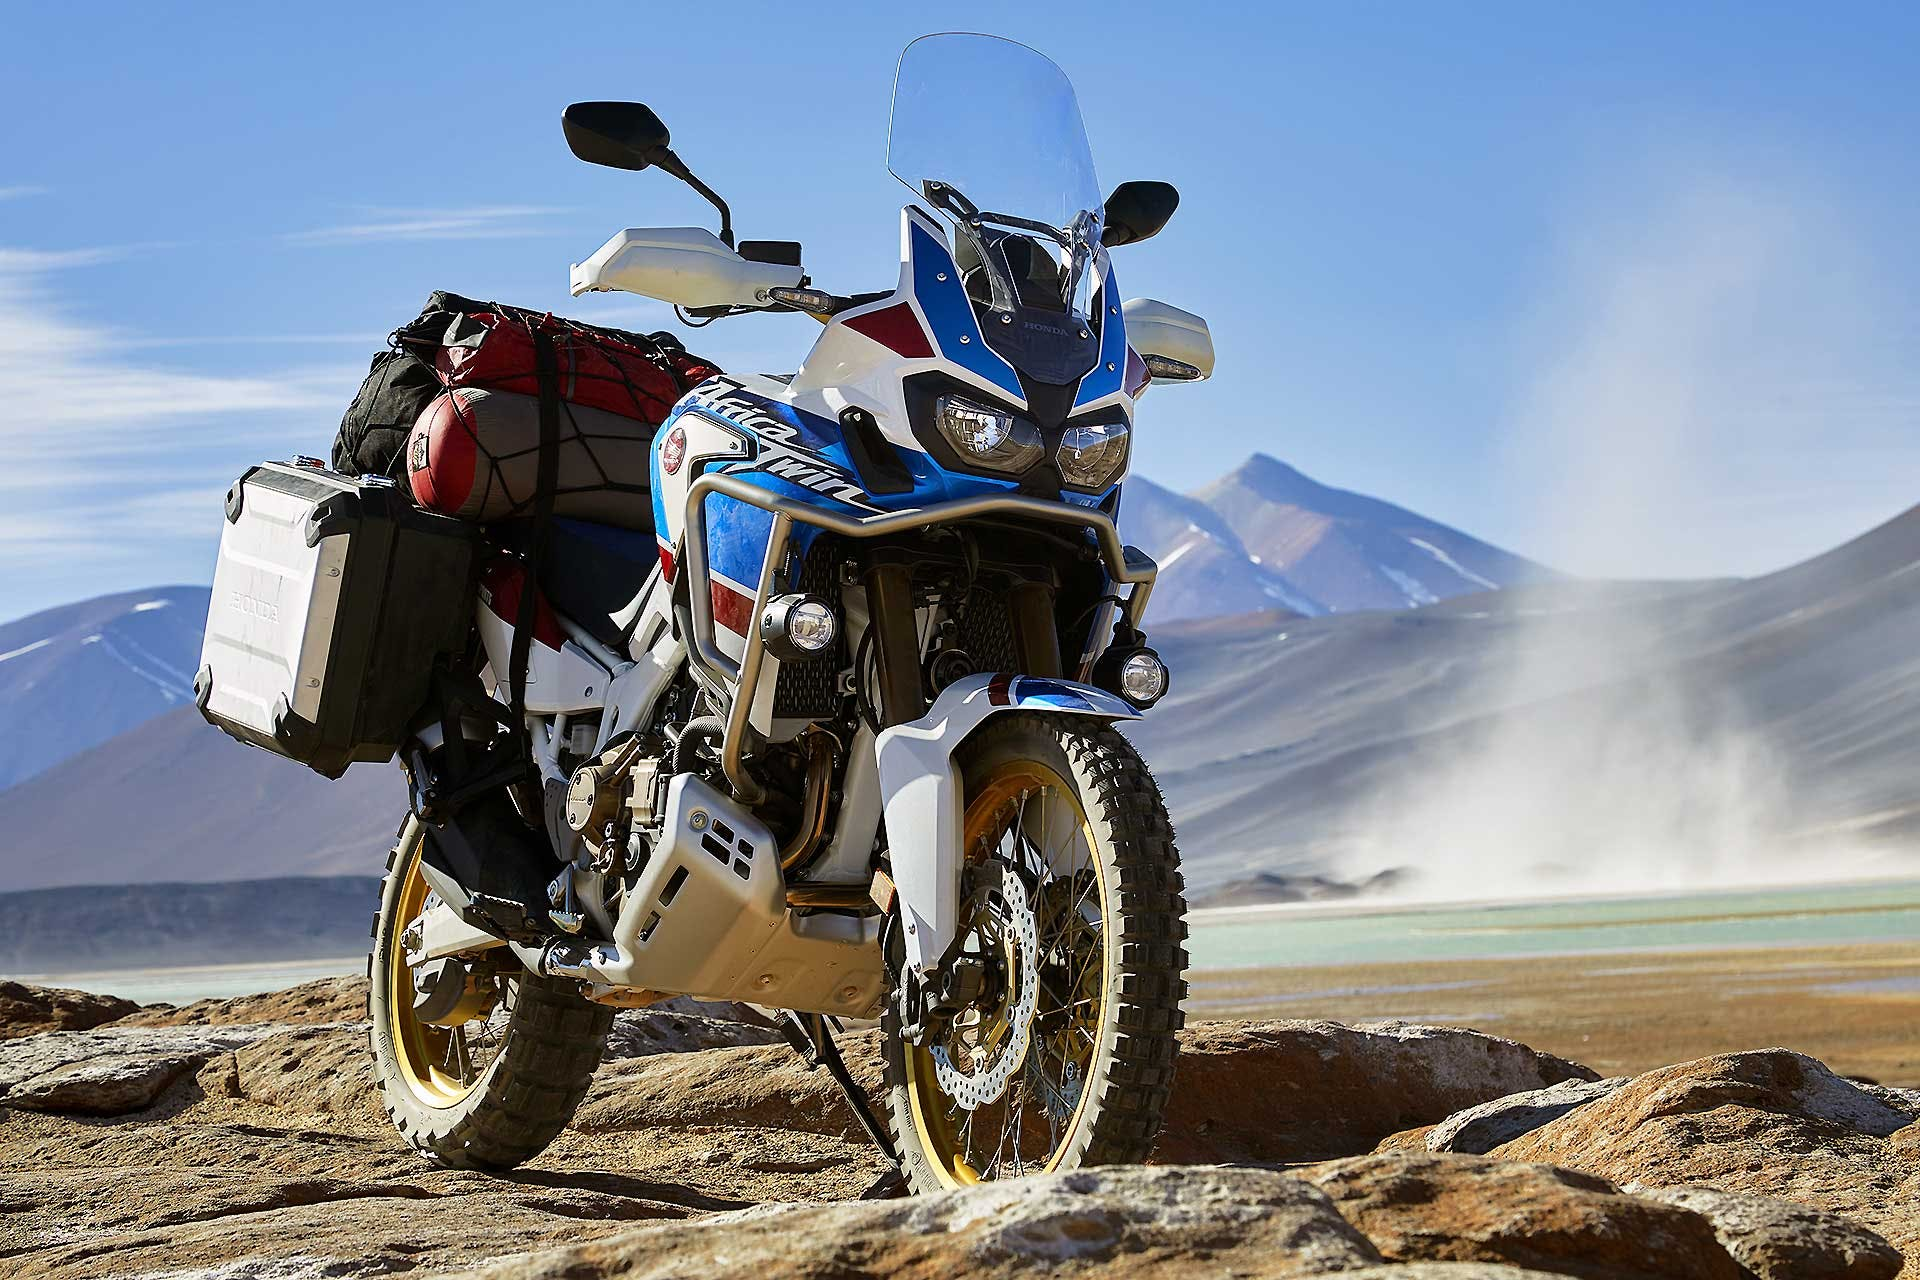 Honda CRF1000L Africa Twin Adventure Sports ambientata su deserto laterale